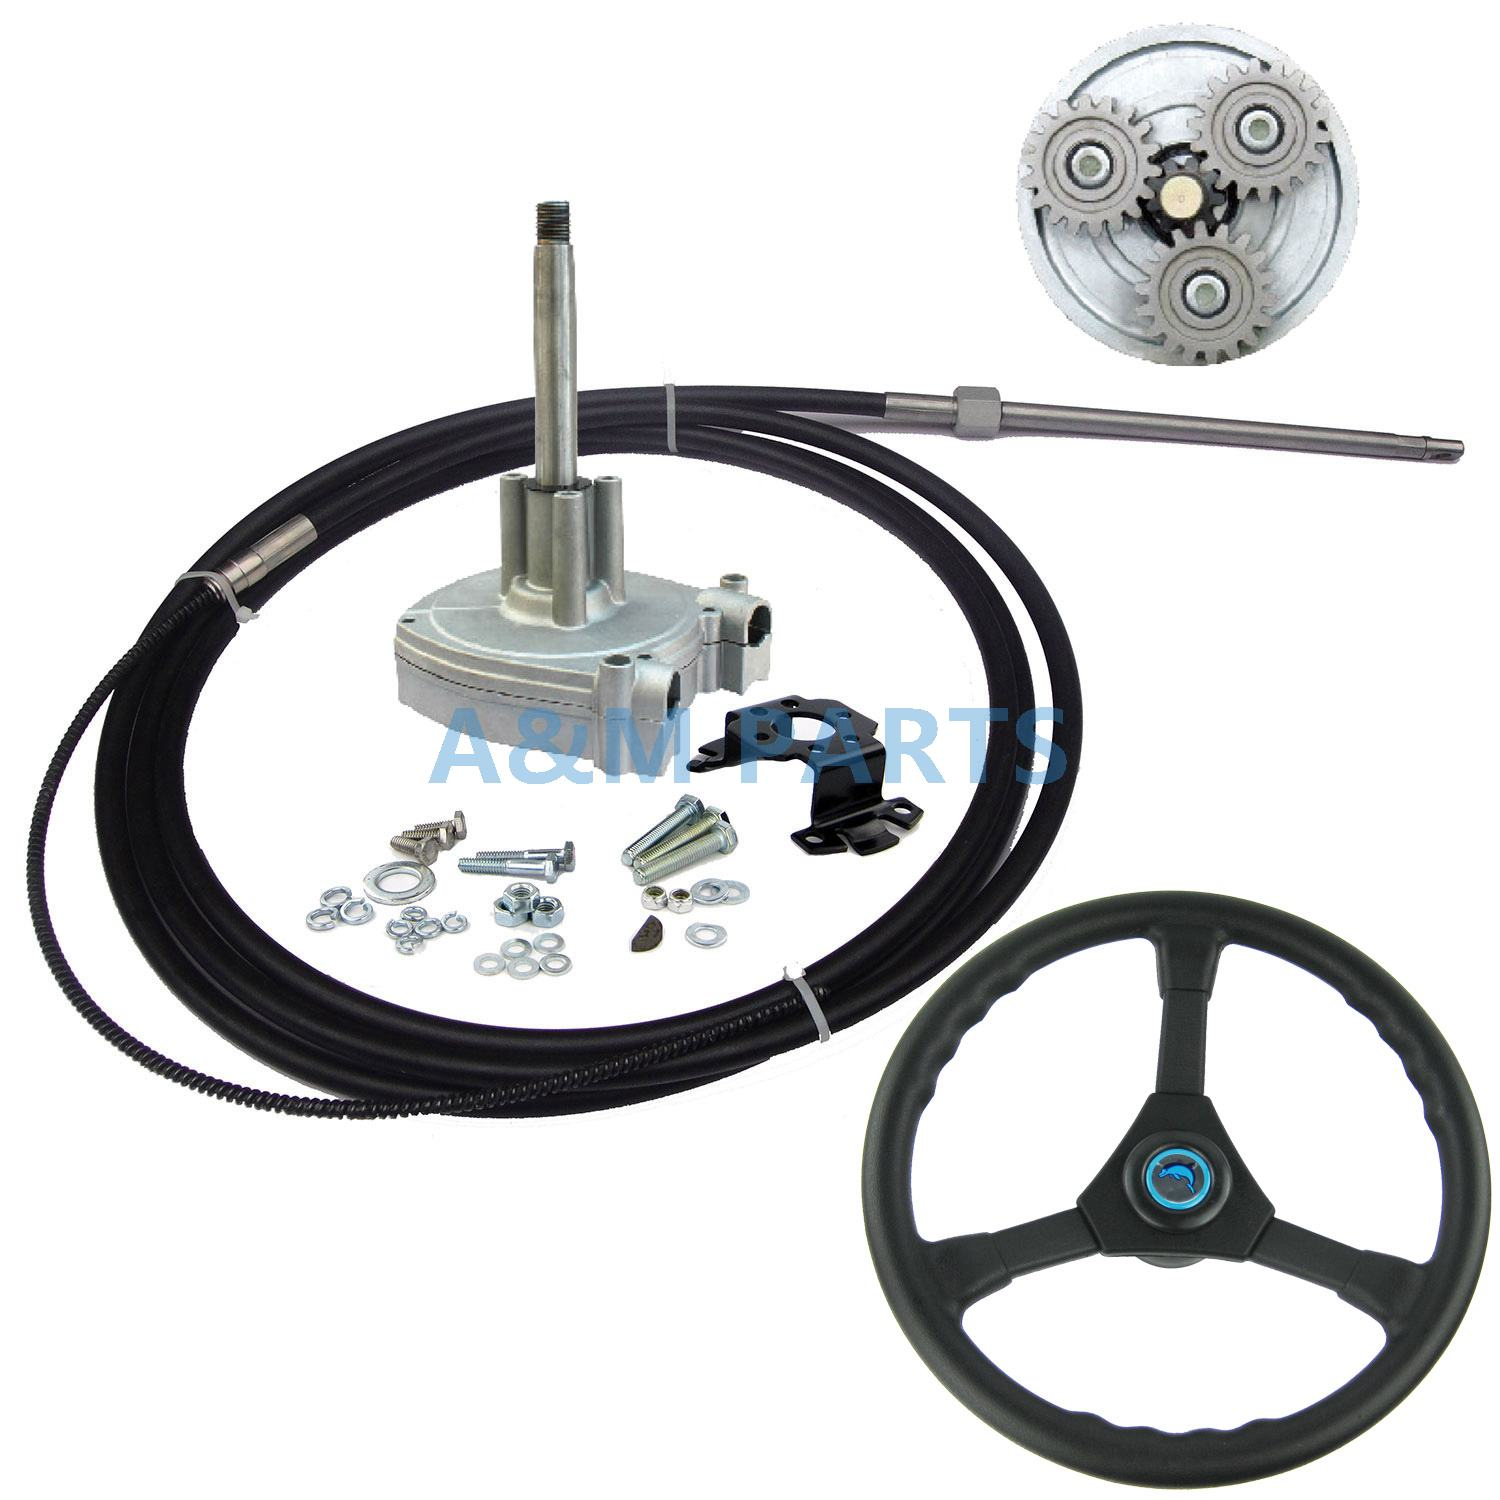 15 FT Boat Outboard Steering System Marine Engine Planetary Gear Steering Control With 15FT Cable and Plastic Steering Wheel